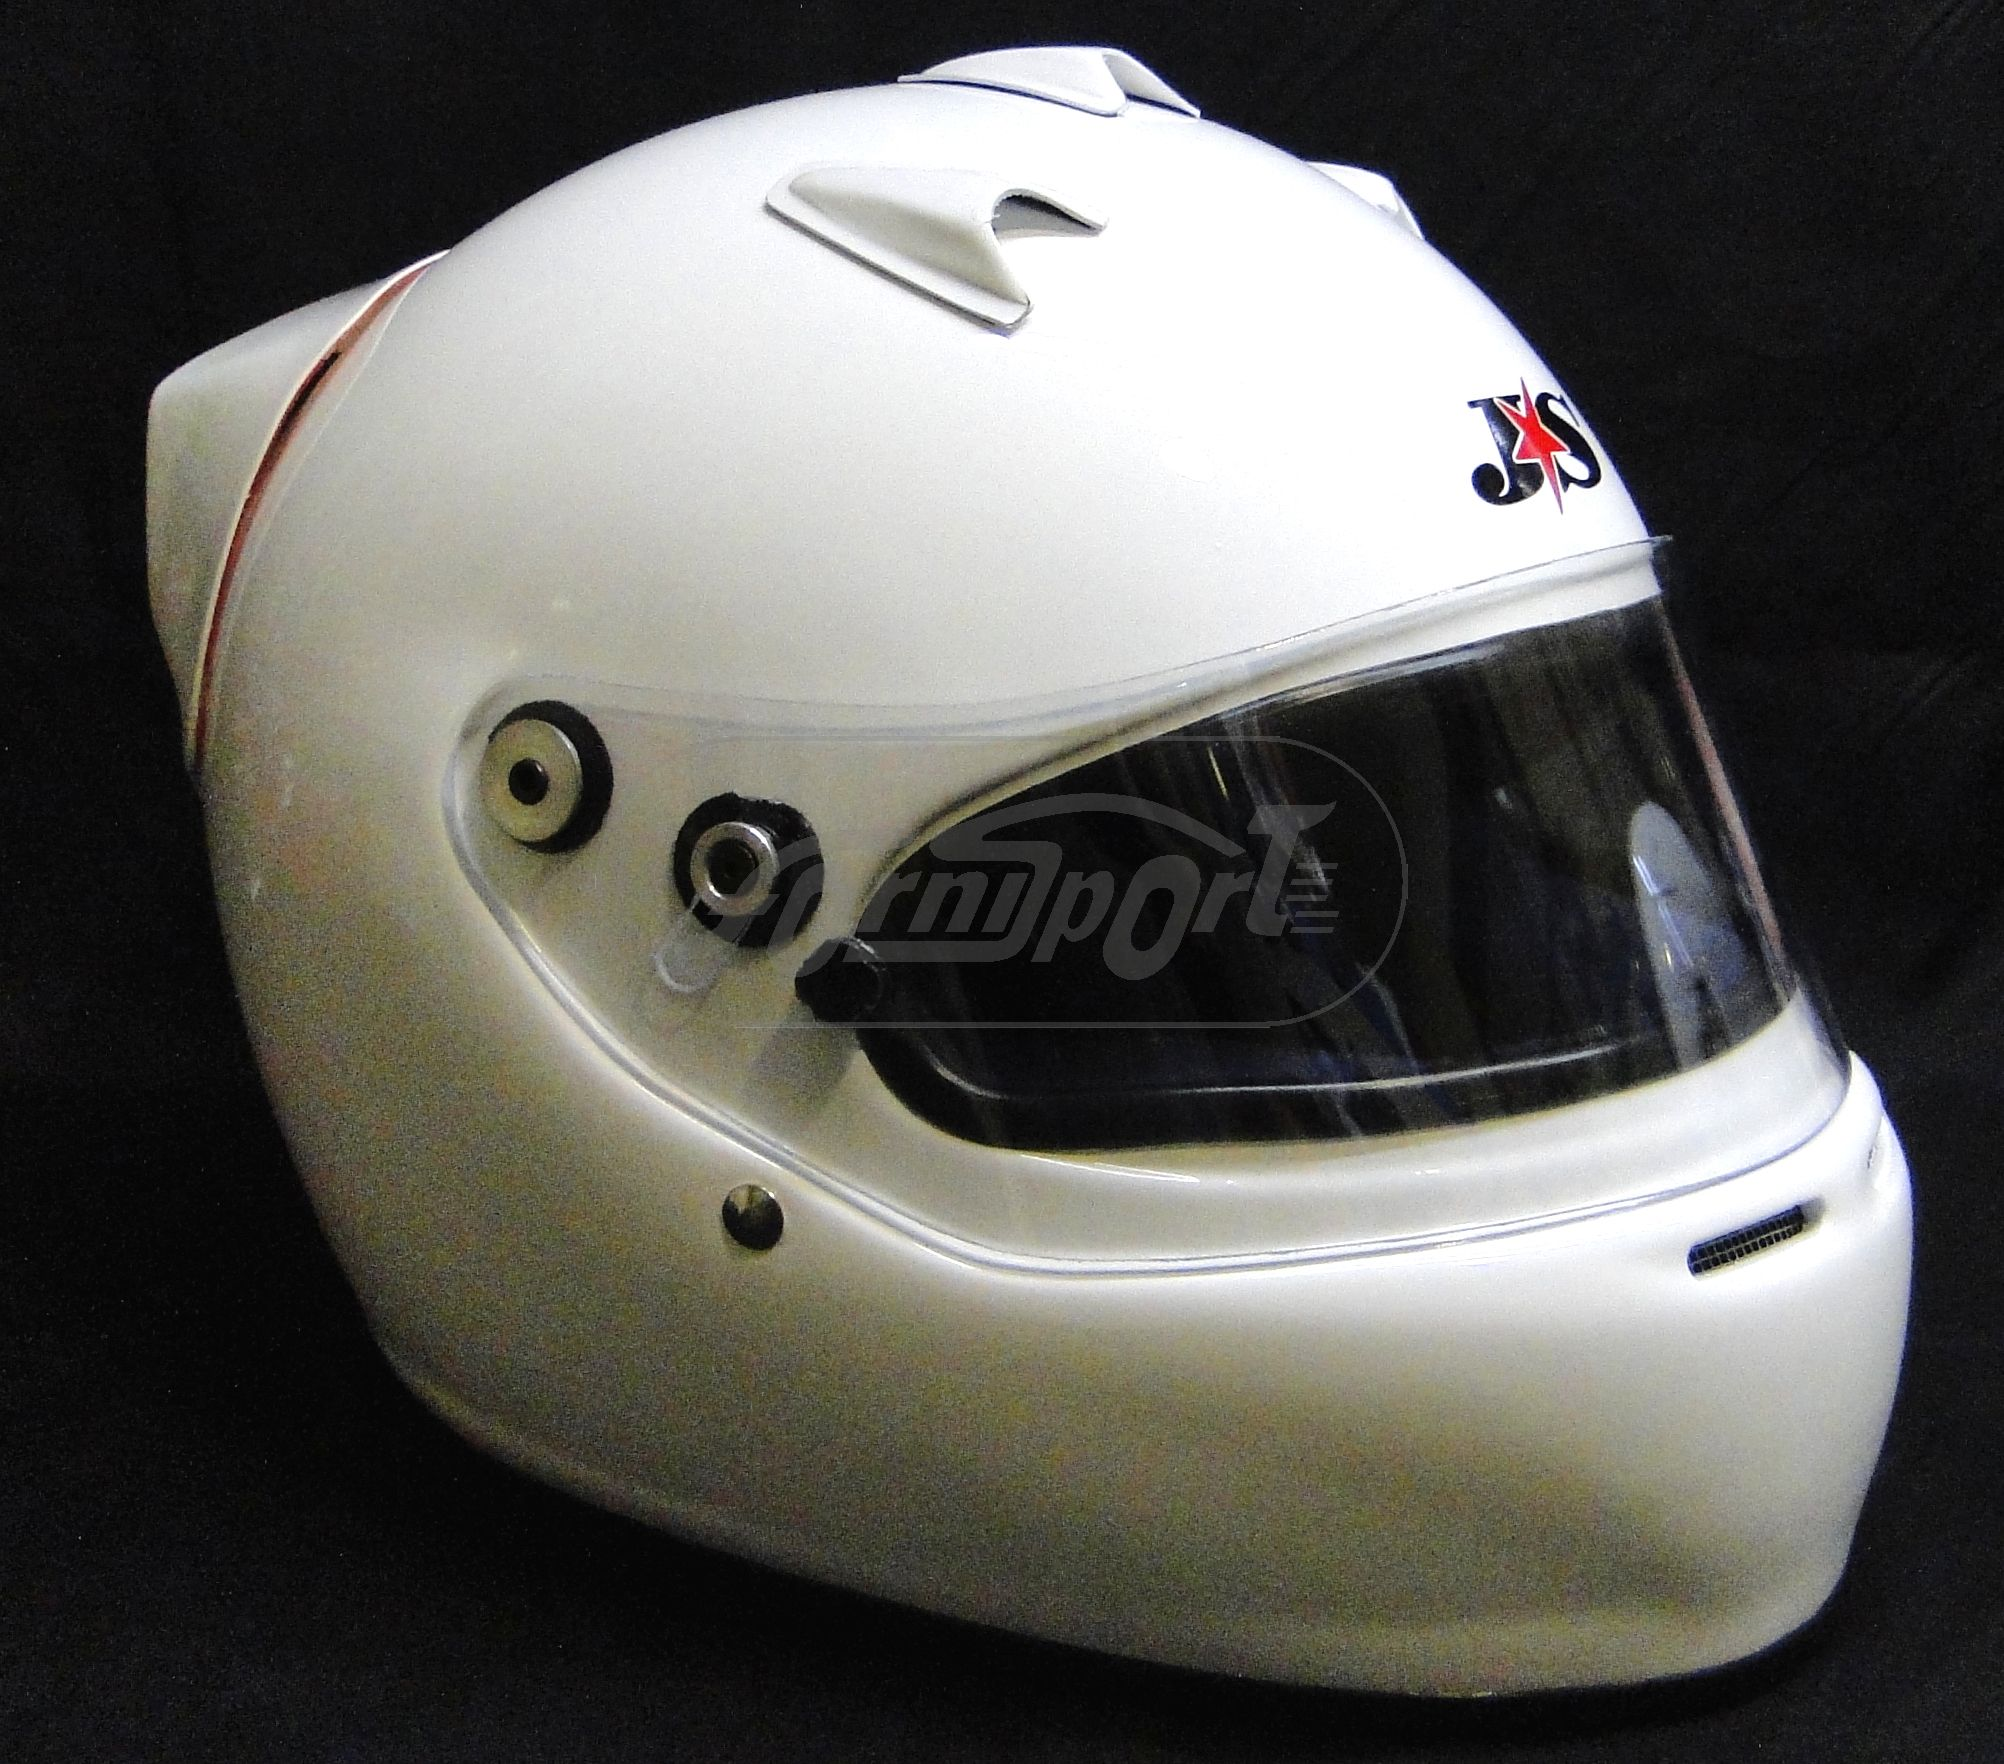 Casco Integral  J*S Racing  T 56 A 5 Con  Aleron